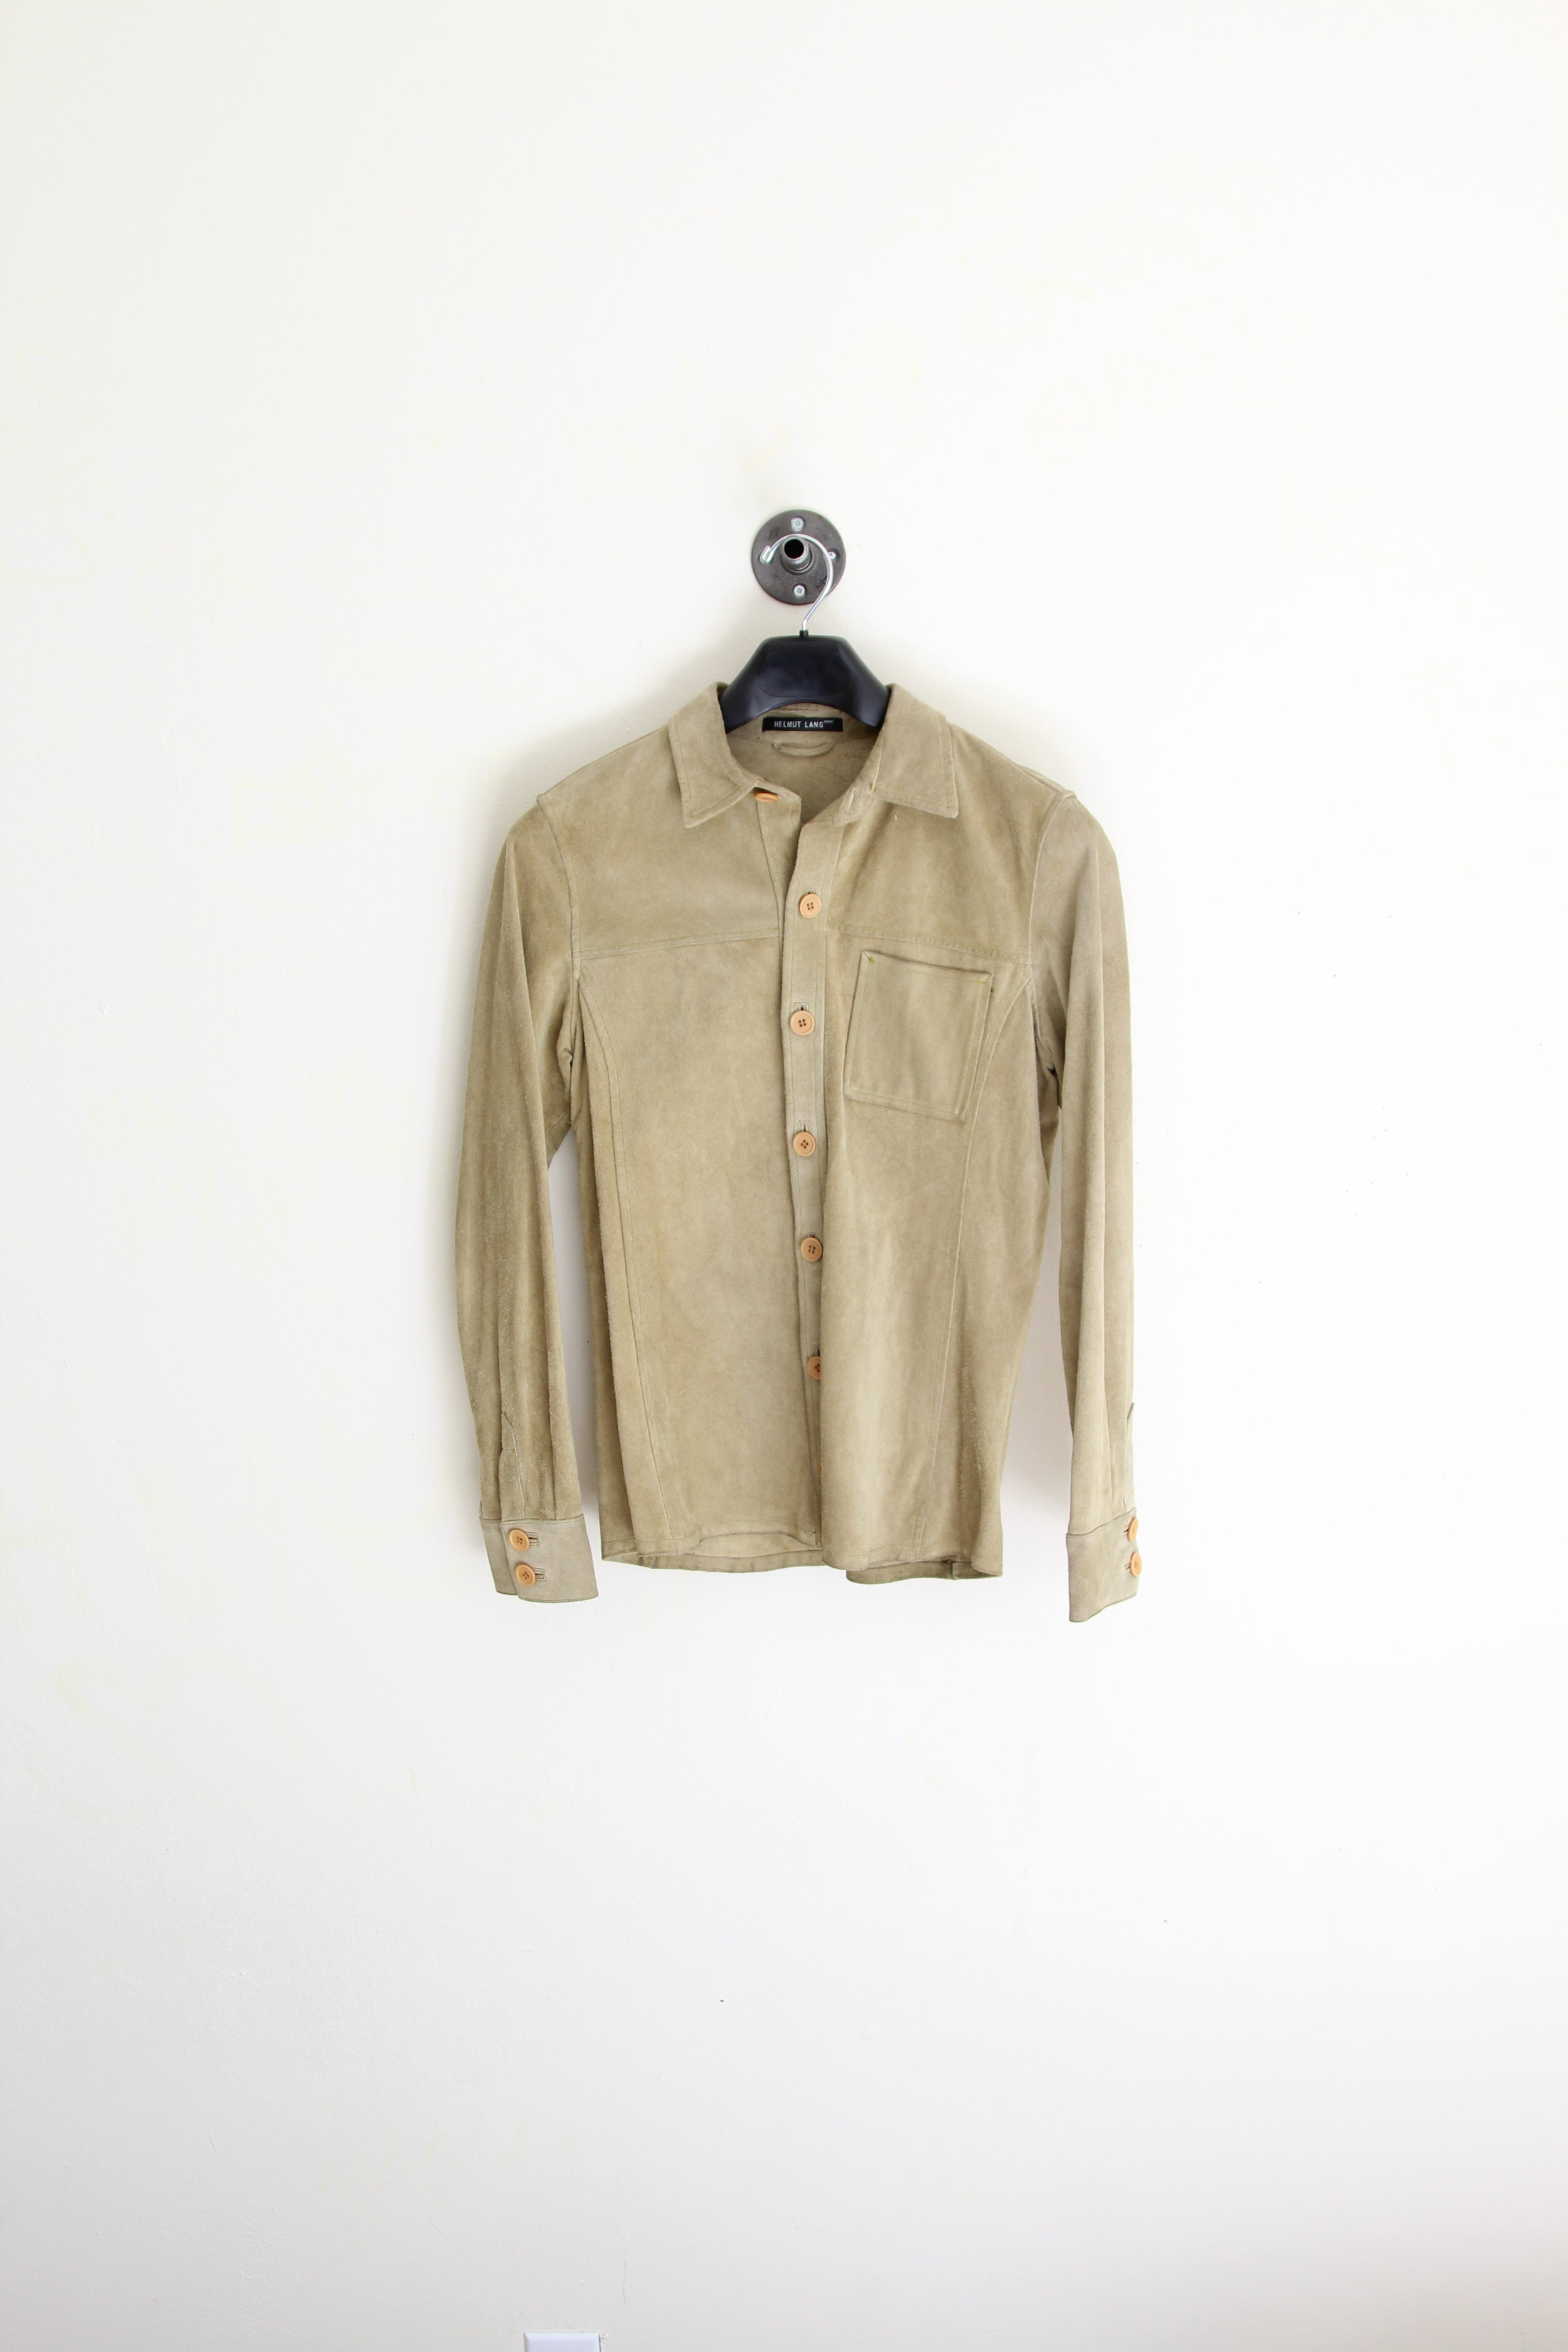 Helmut Lang AW 1997 Suede Shirt